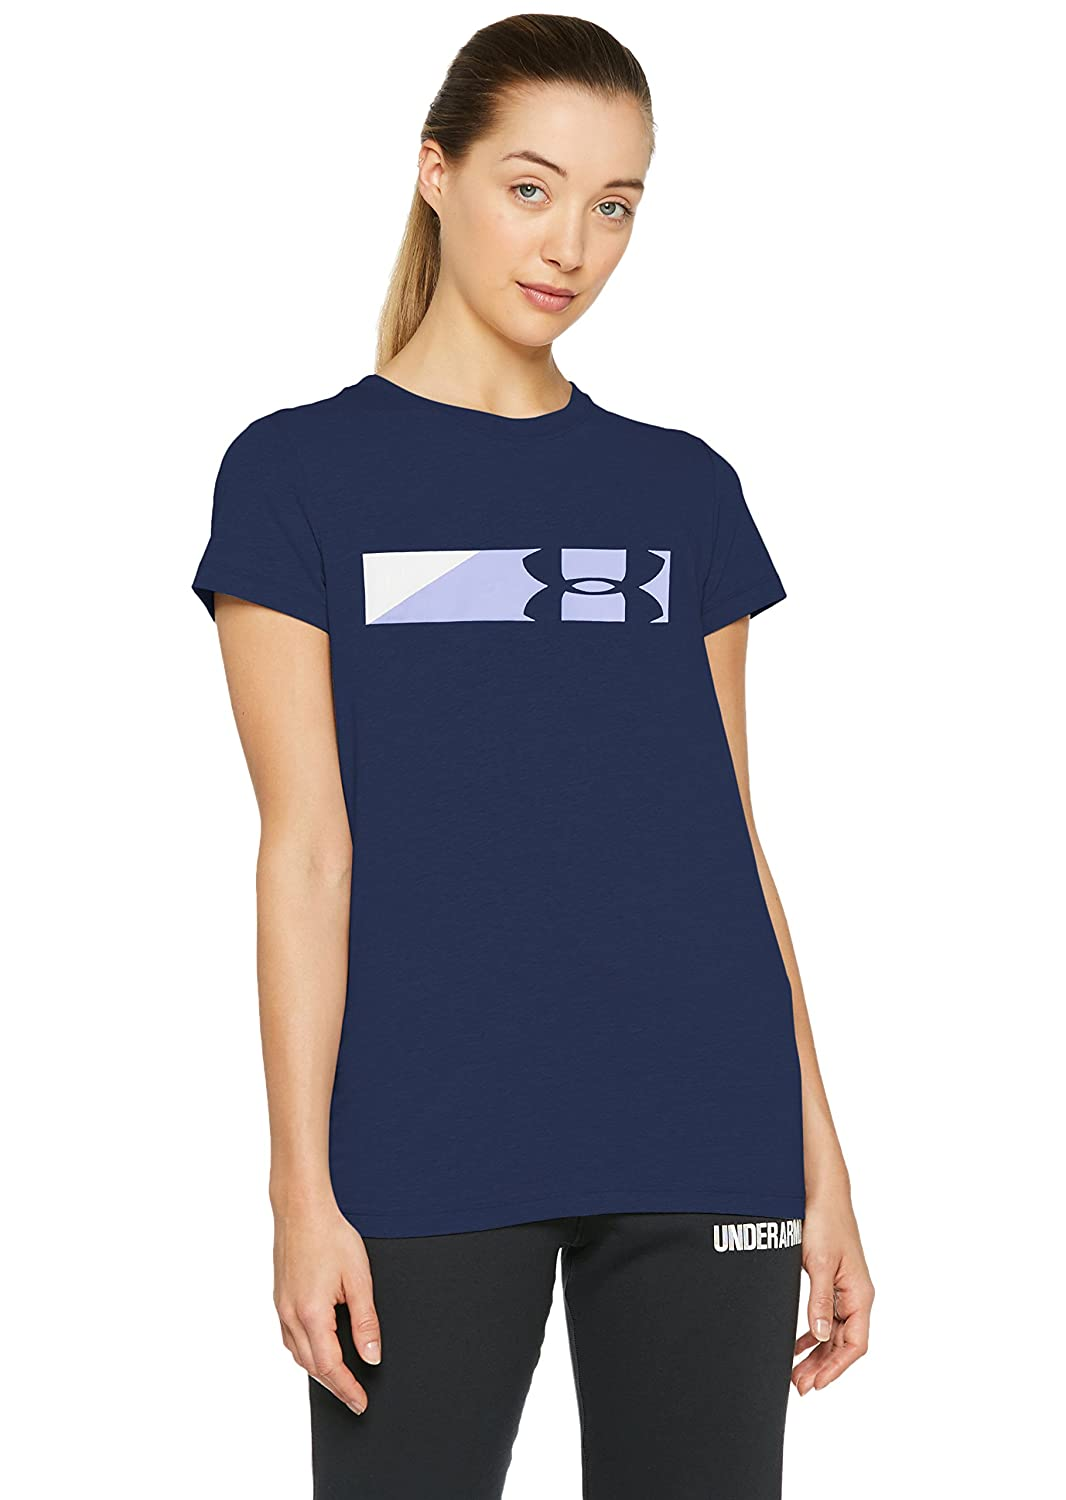 83566888f Amazon.com: Under Armour Women's Sportstyle Graphic T-Shirt: Clothing